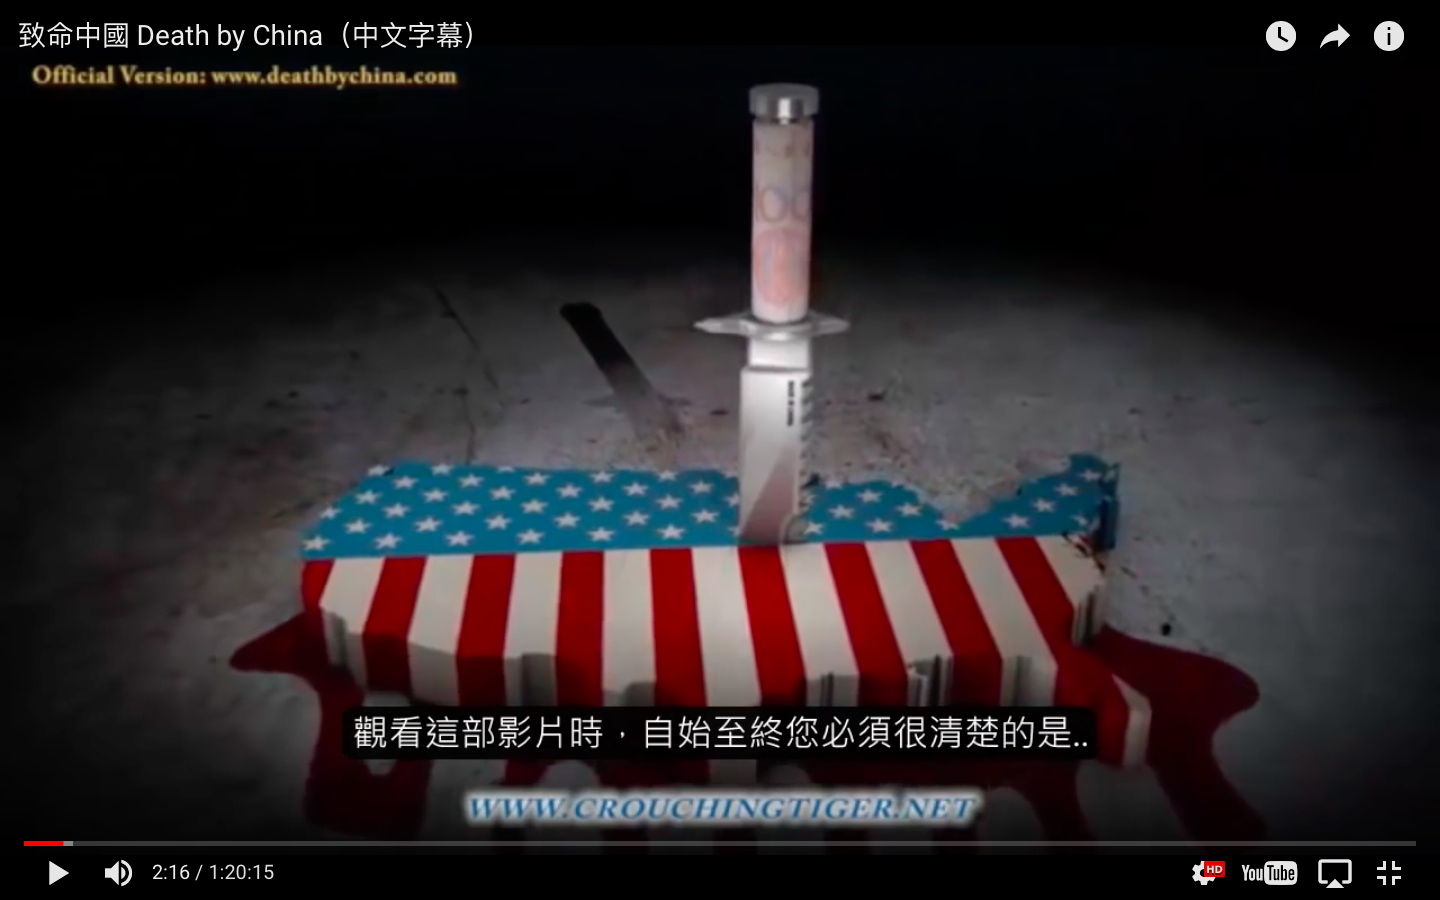 致命中國 Death by China 川普的對中經濟政策,會如何擬定? 以下這部影片,可以幫你預知